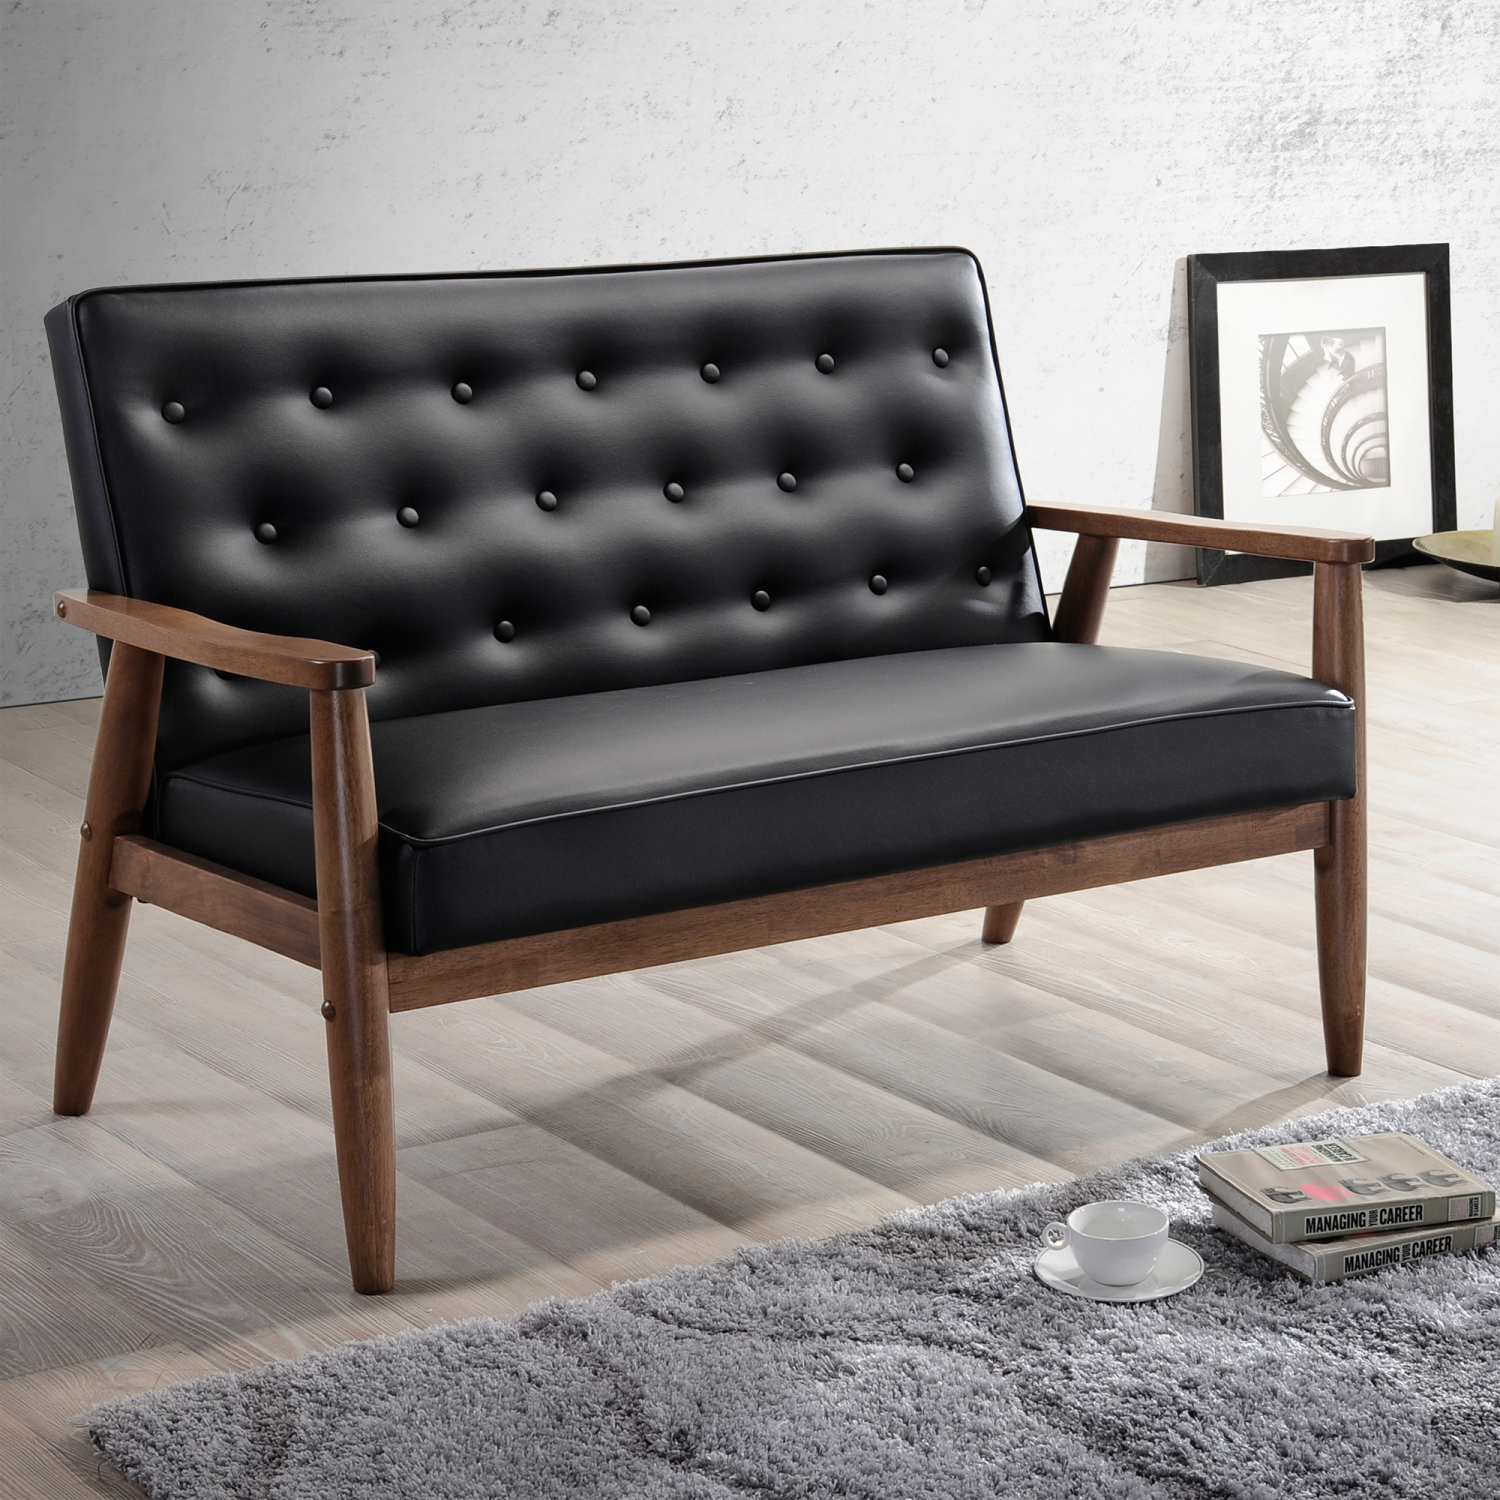 Details About Mid Century Leather Wood Loveseat Danish Design Living Guest Room Sofa